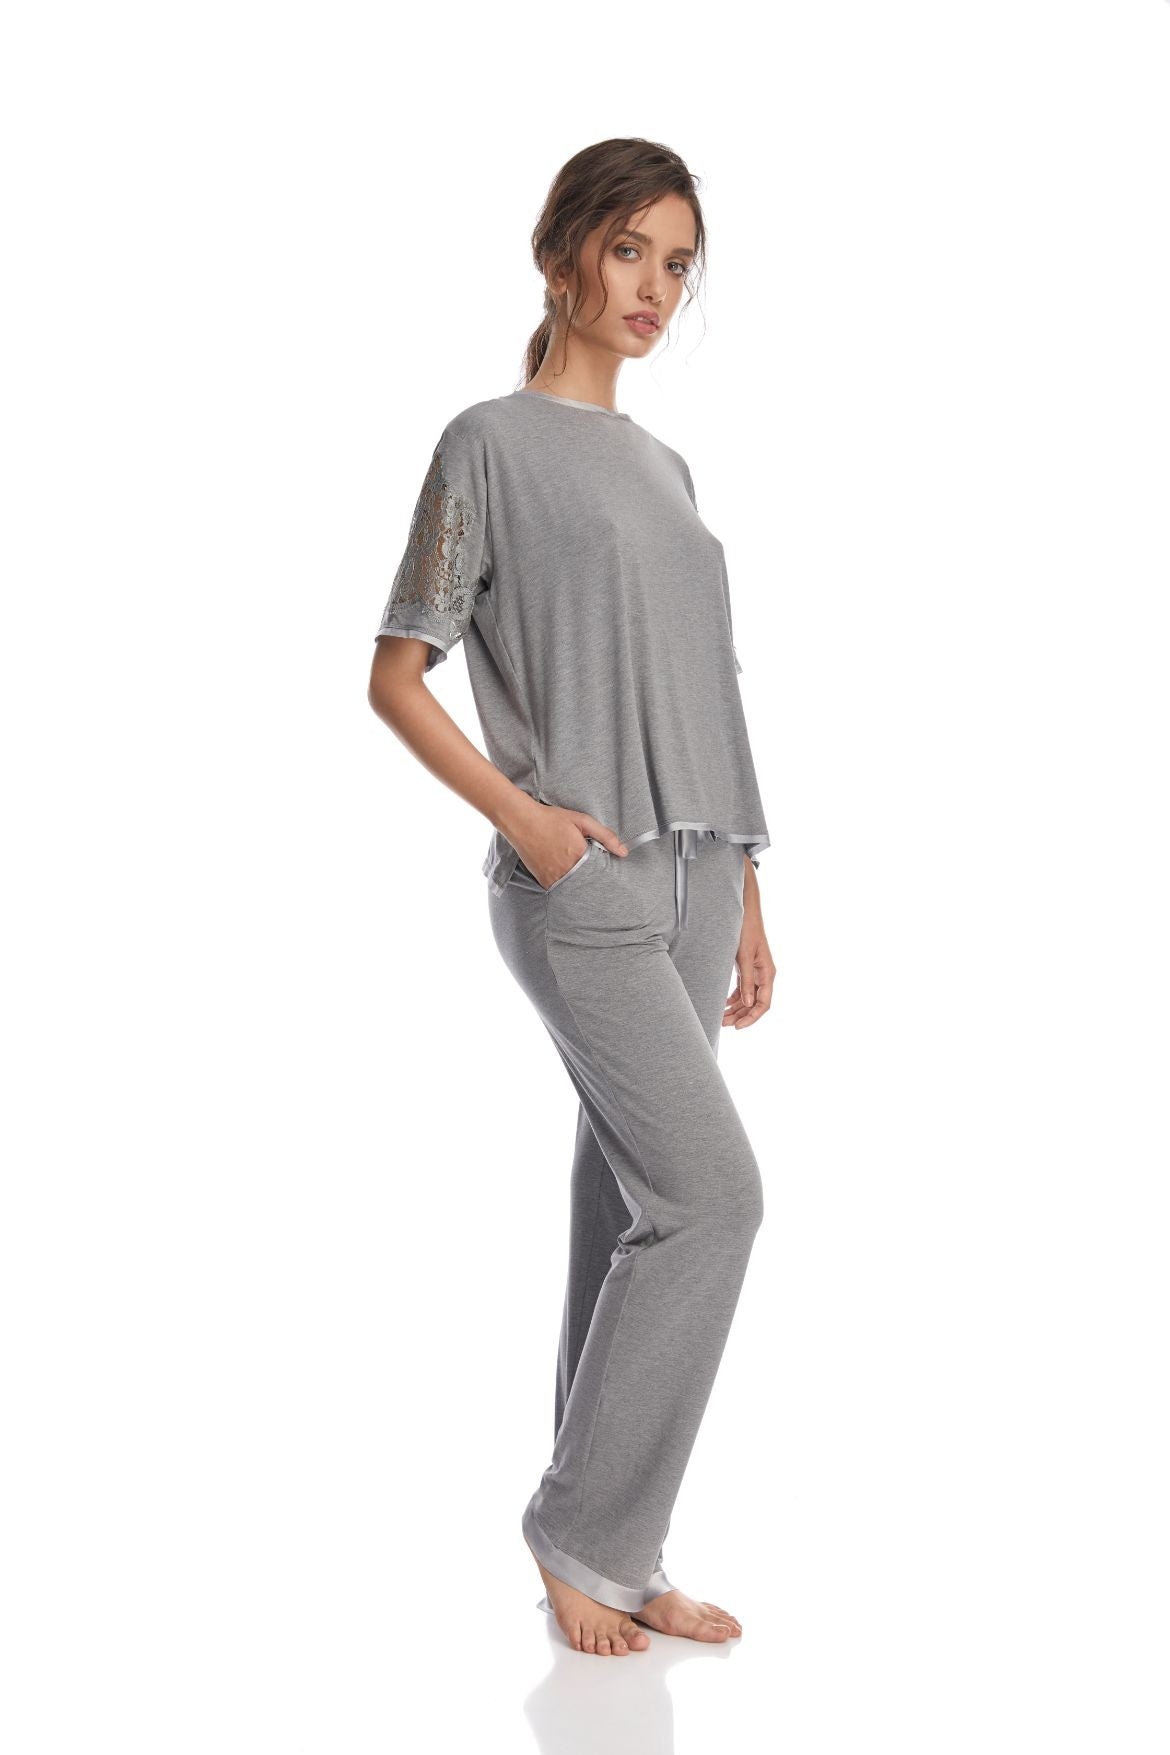 I.D. Sarrieri cotton and lace grey loungewear pants